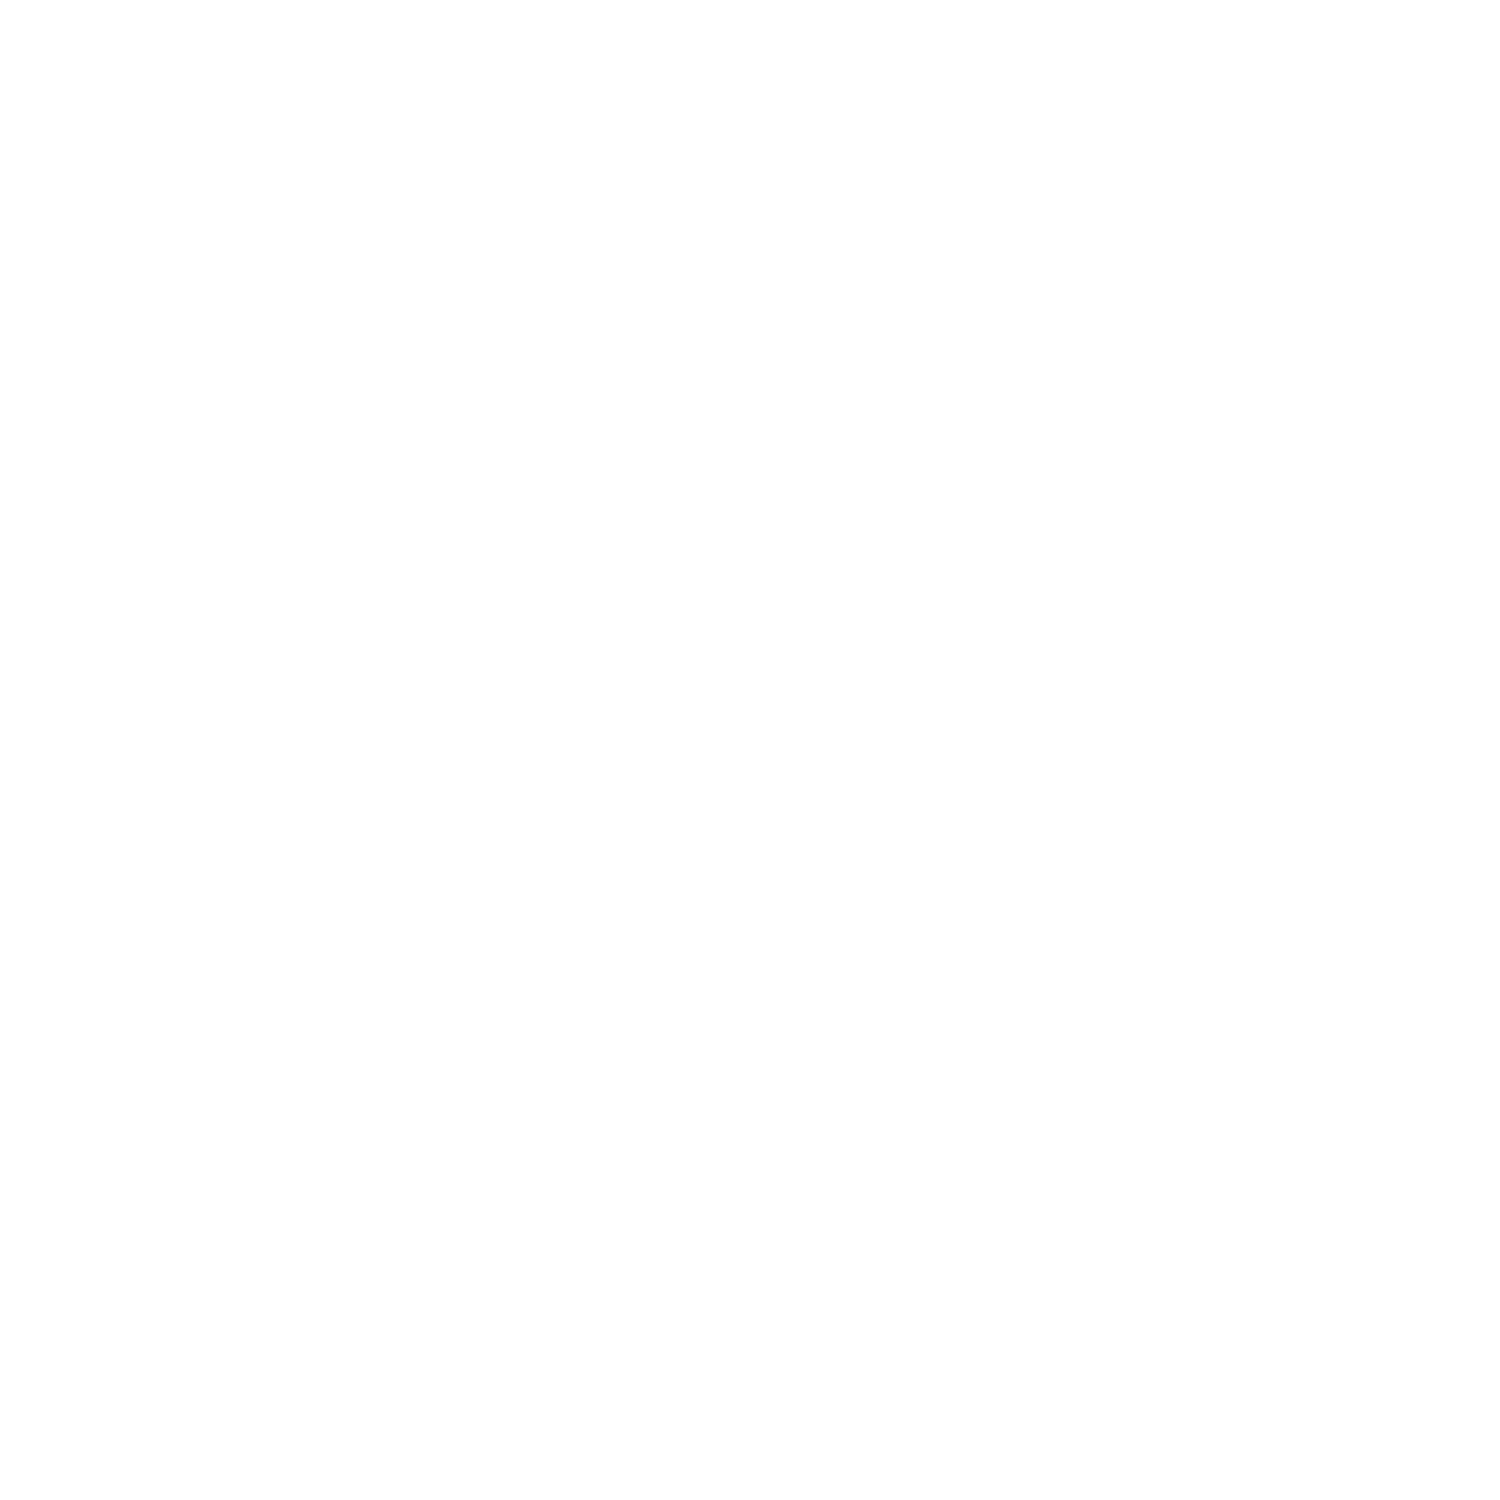 Straight line png. Of light transprent free